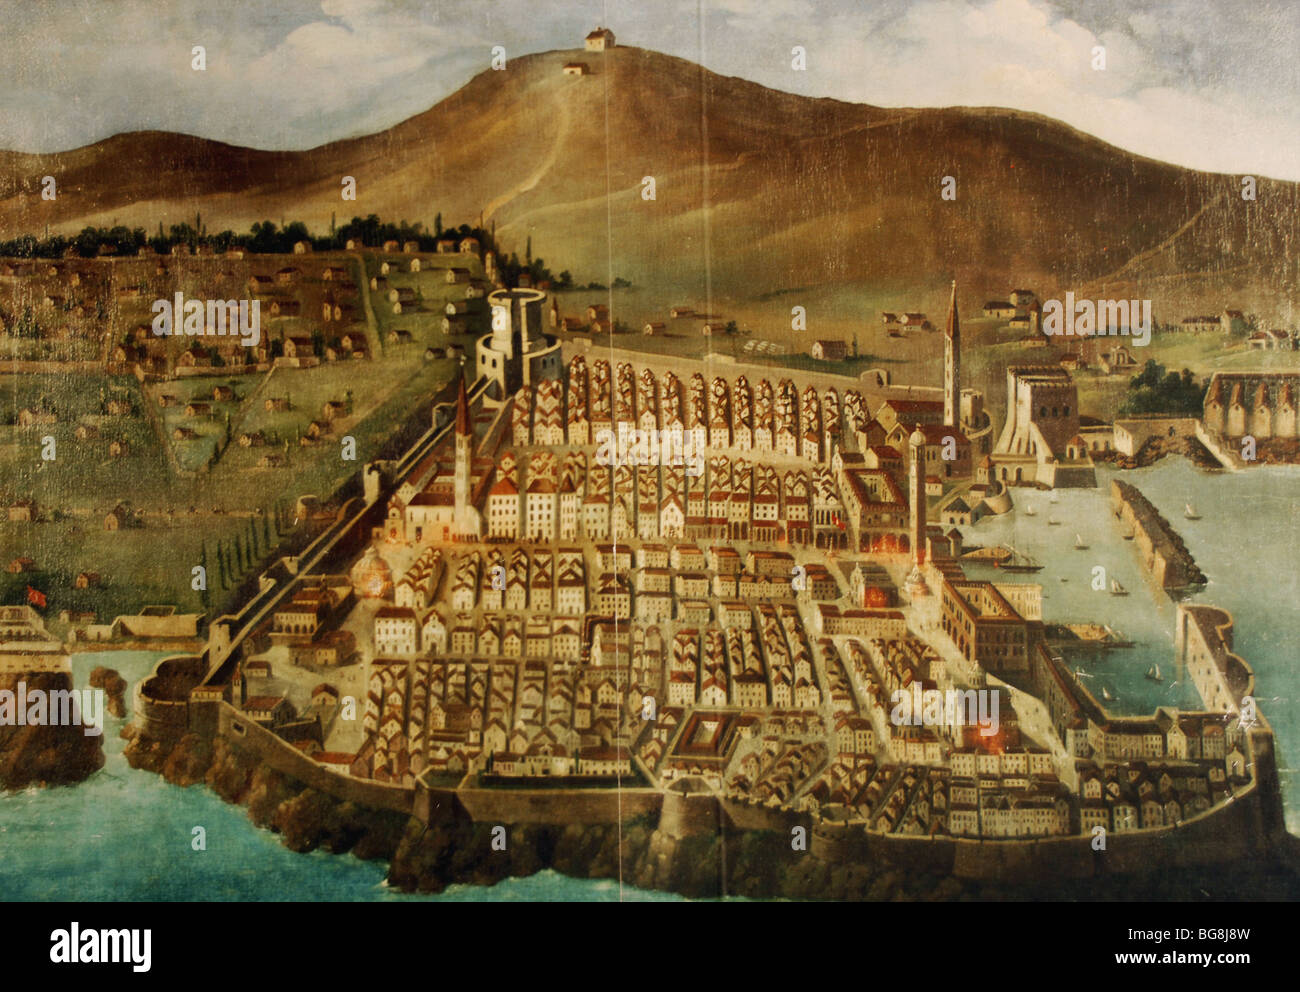 Dubrovnik. Map of the city before the earthquake of 1667. Croatia. - Stock Image